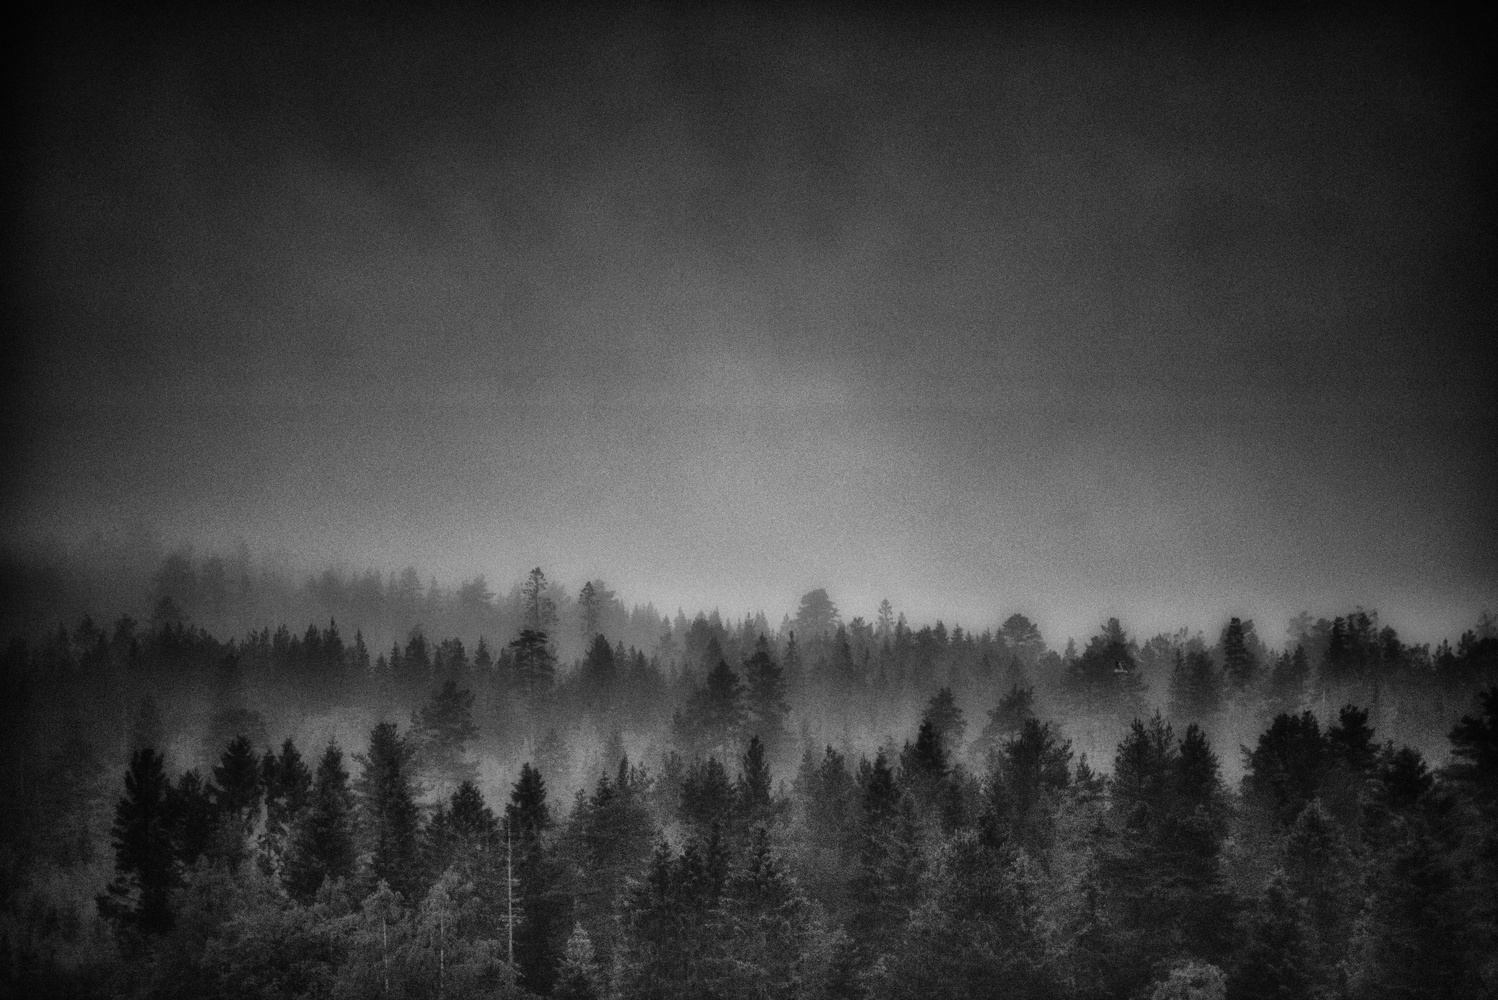 Black Forest by Wix Mo